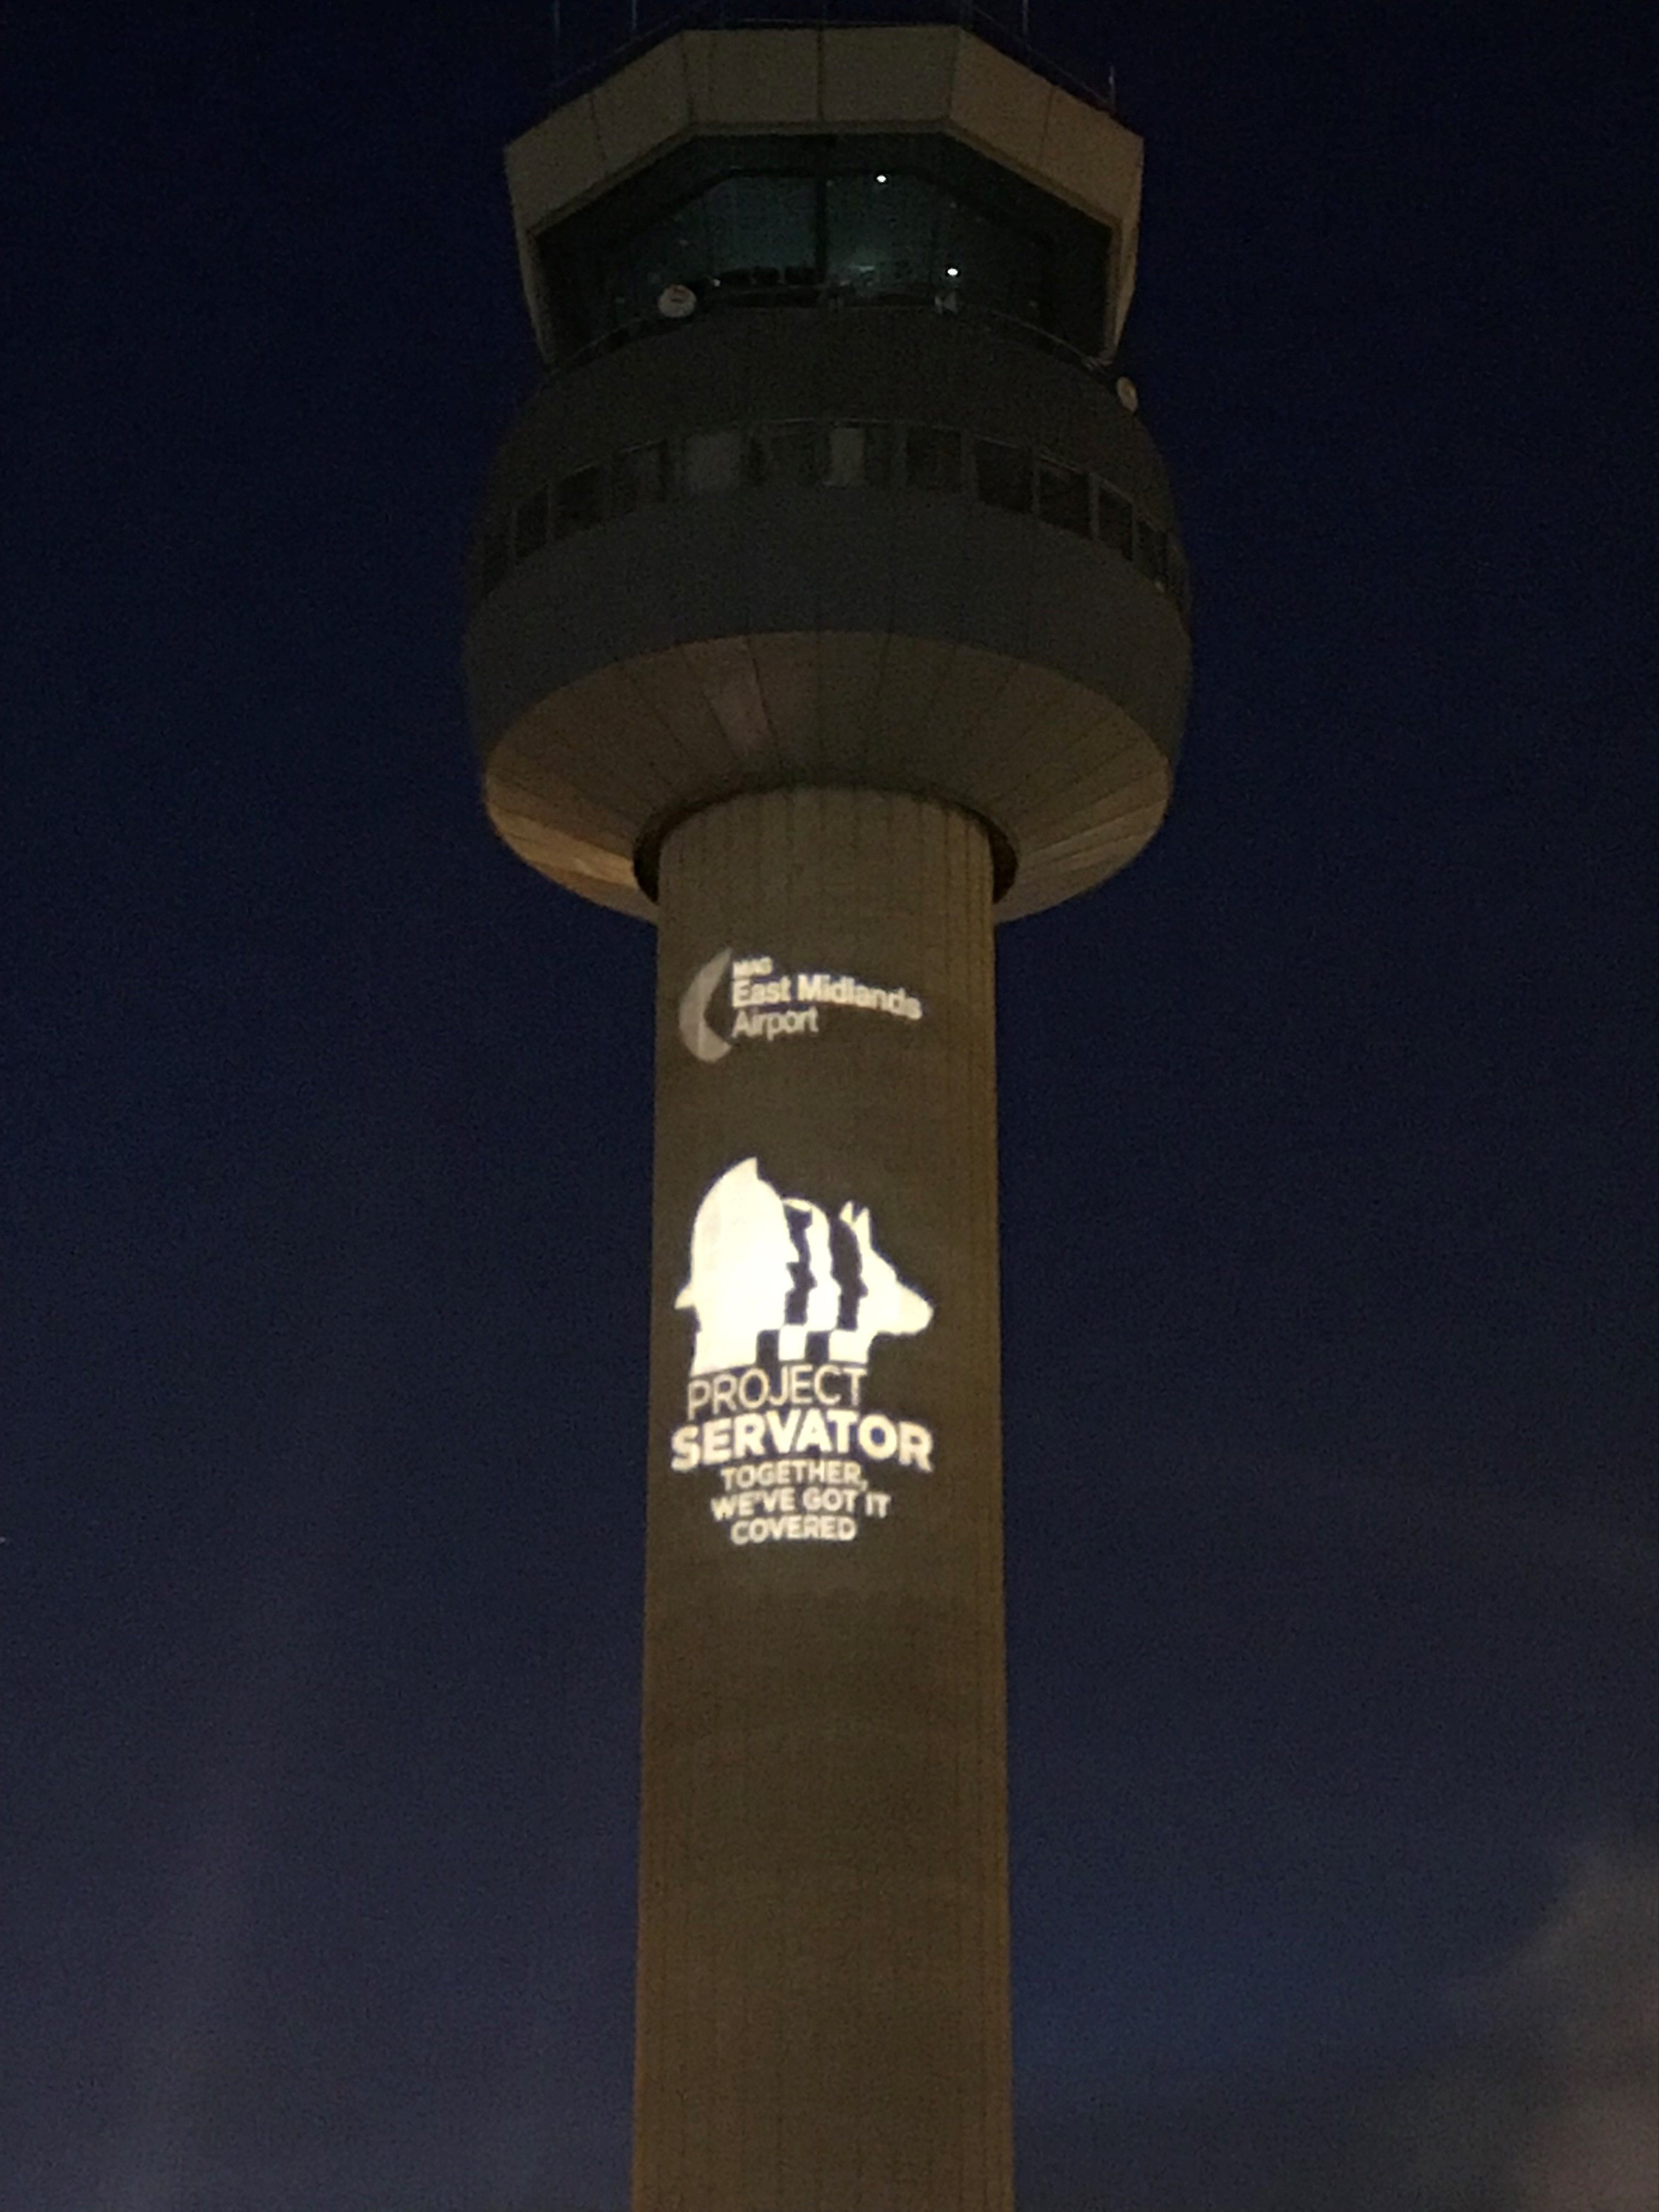 East Midlands Airport Project Servator Tower